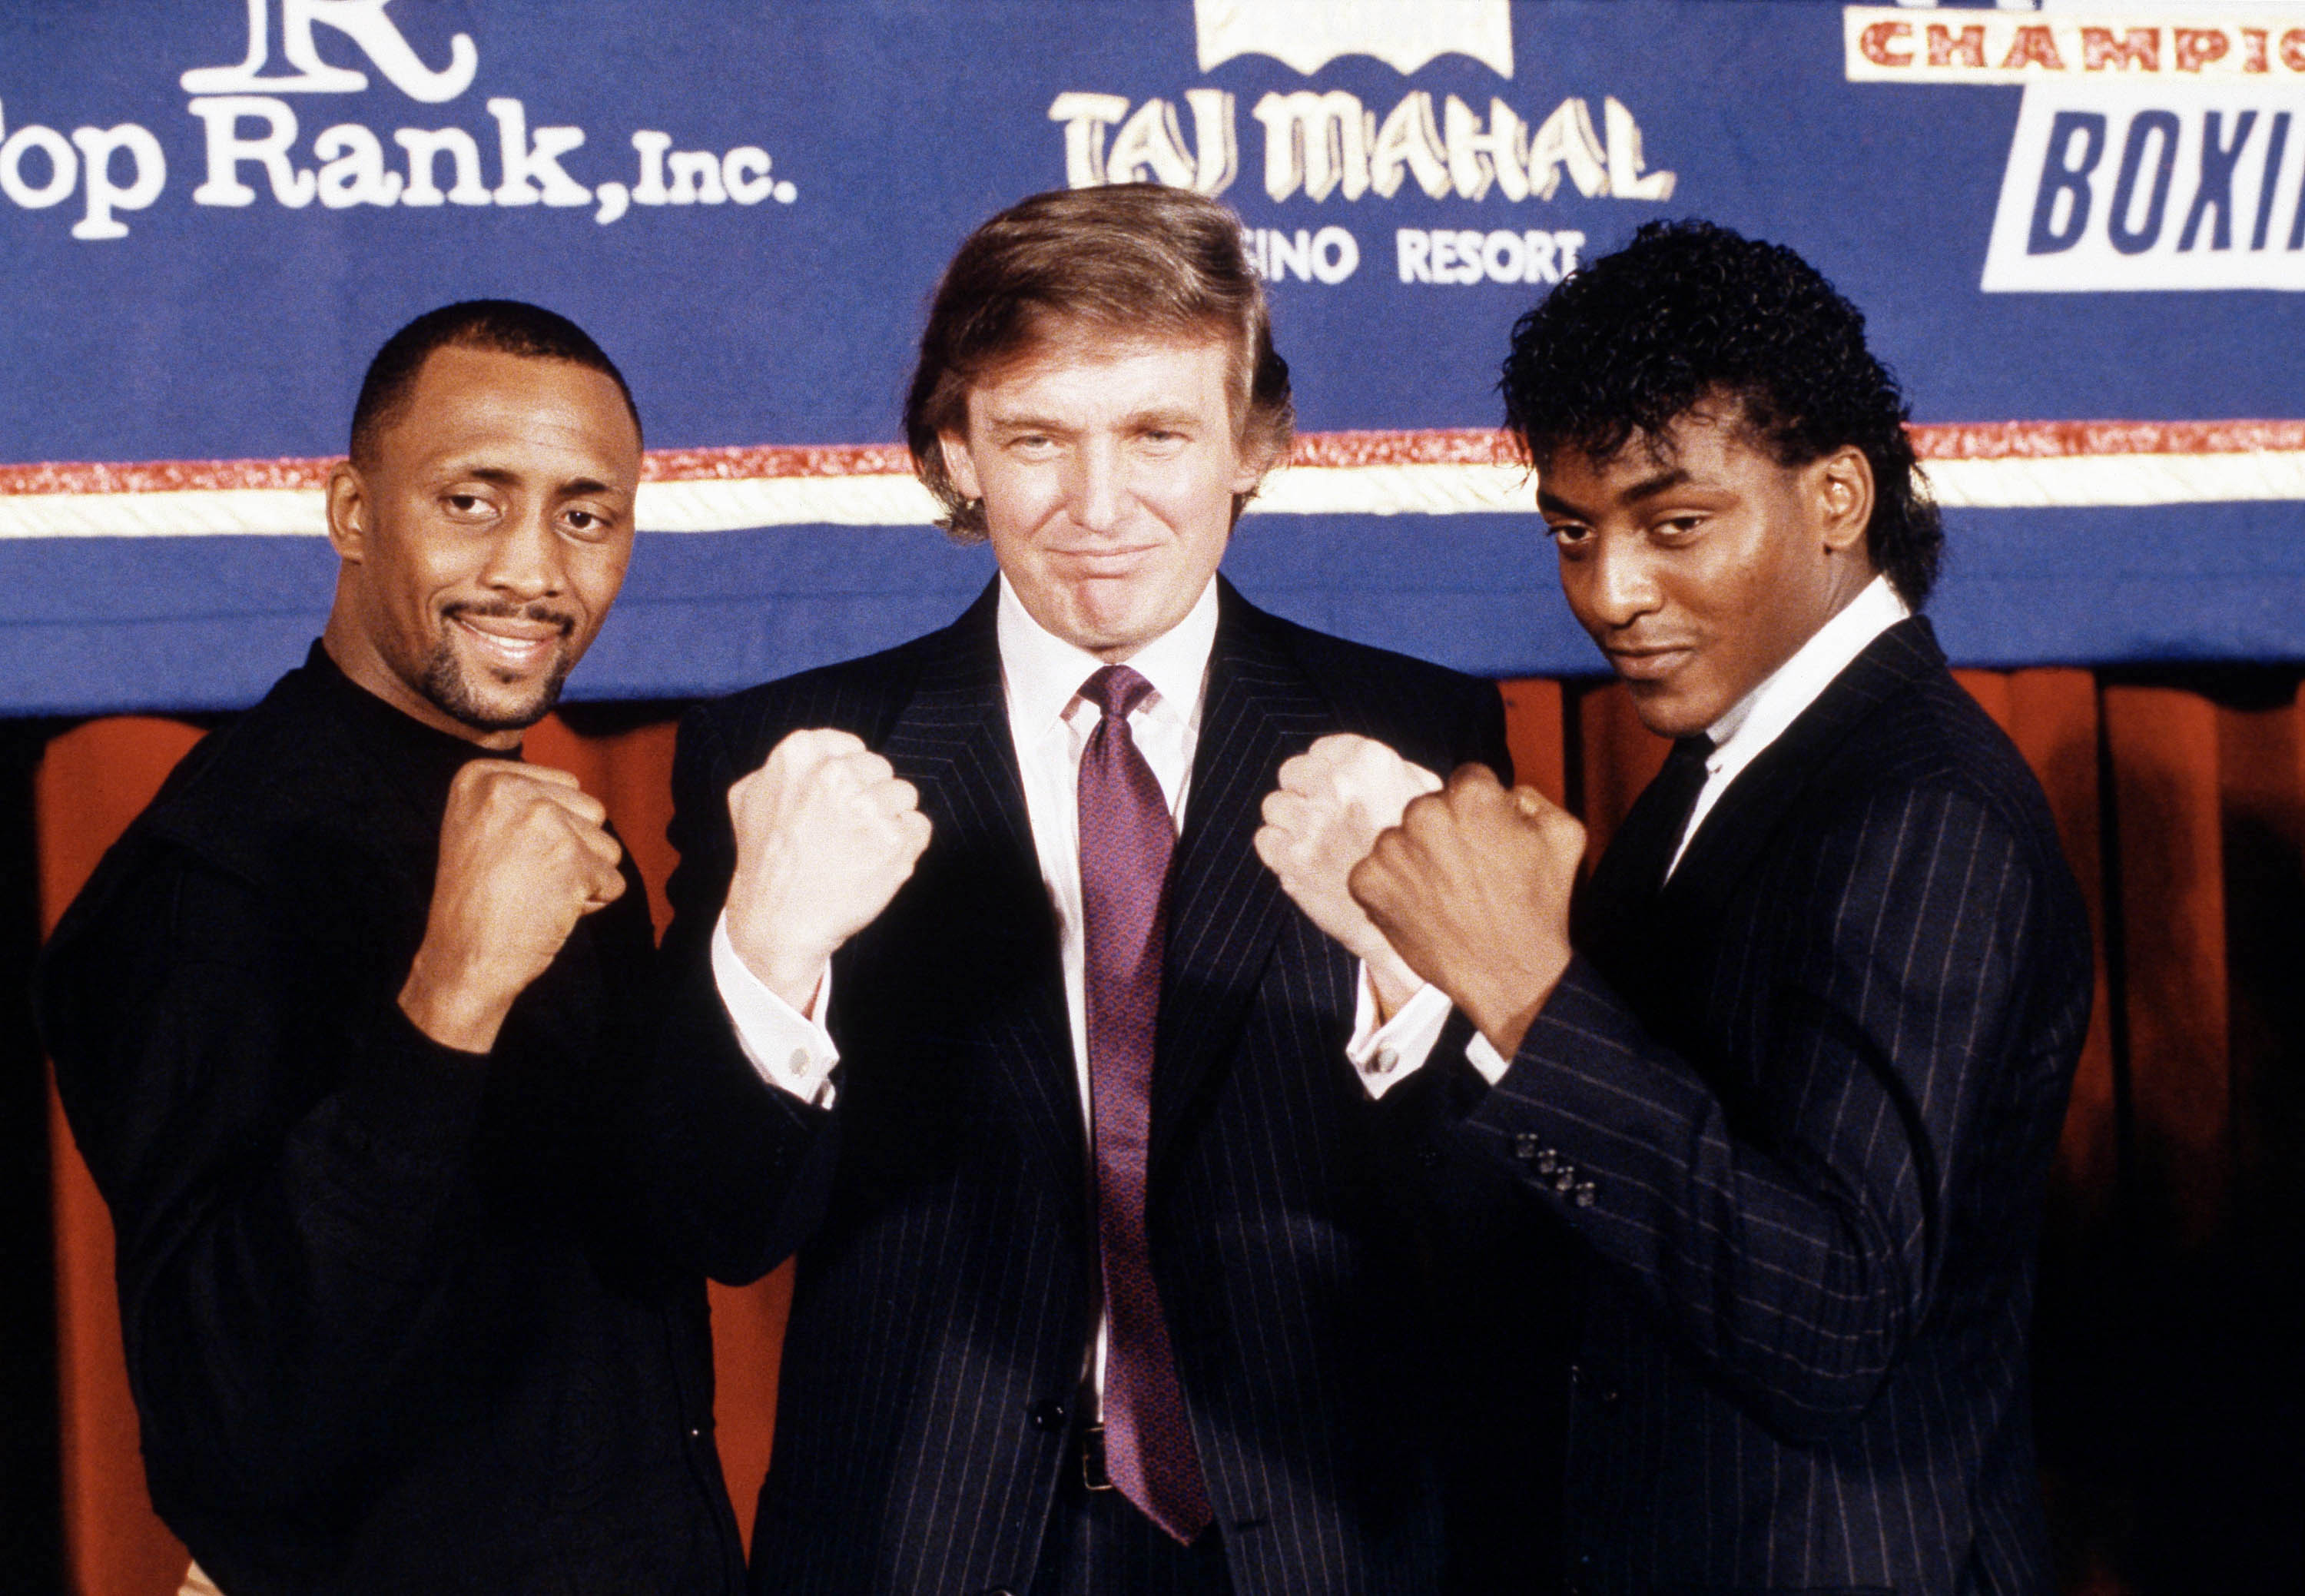 Developer Donald Trump is flanked by super middleweight champion Thomas Hearns, left, of Detroit, and Michael Olajide of Canada at a news conference in New York on Feb. 15, 1990.